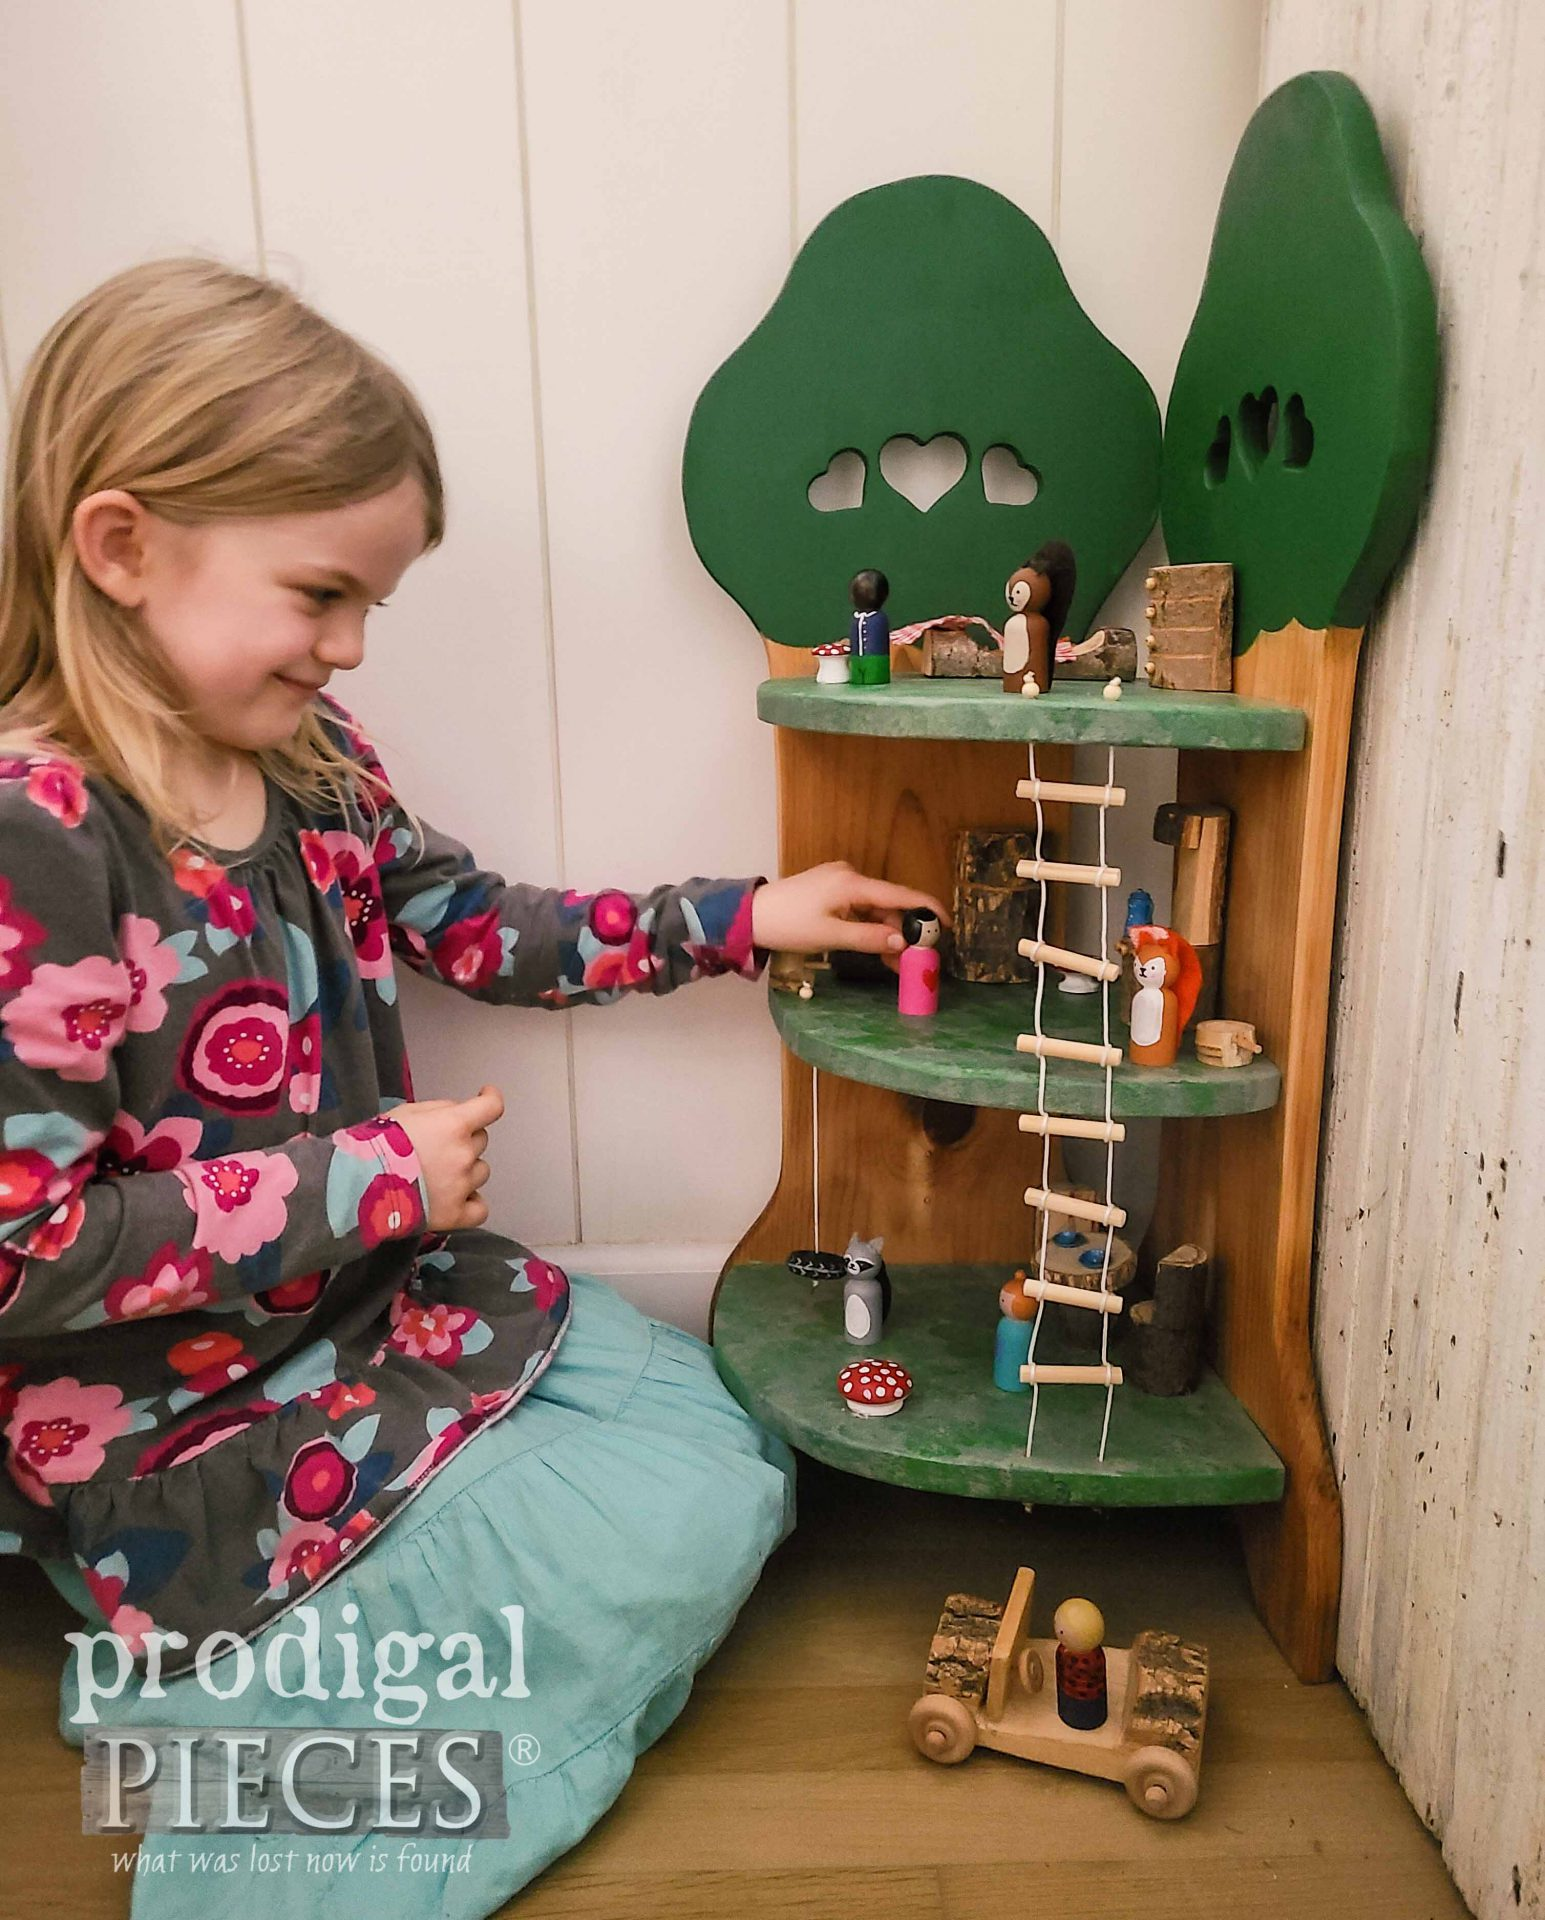 Kid Playing with Woodland Treehouse made from Upcycled Quilt Rack by Larissa of Prodigal Pieces | prodigalpieces.com #prodigalpieces #handmade #toys #kids #gift